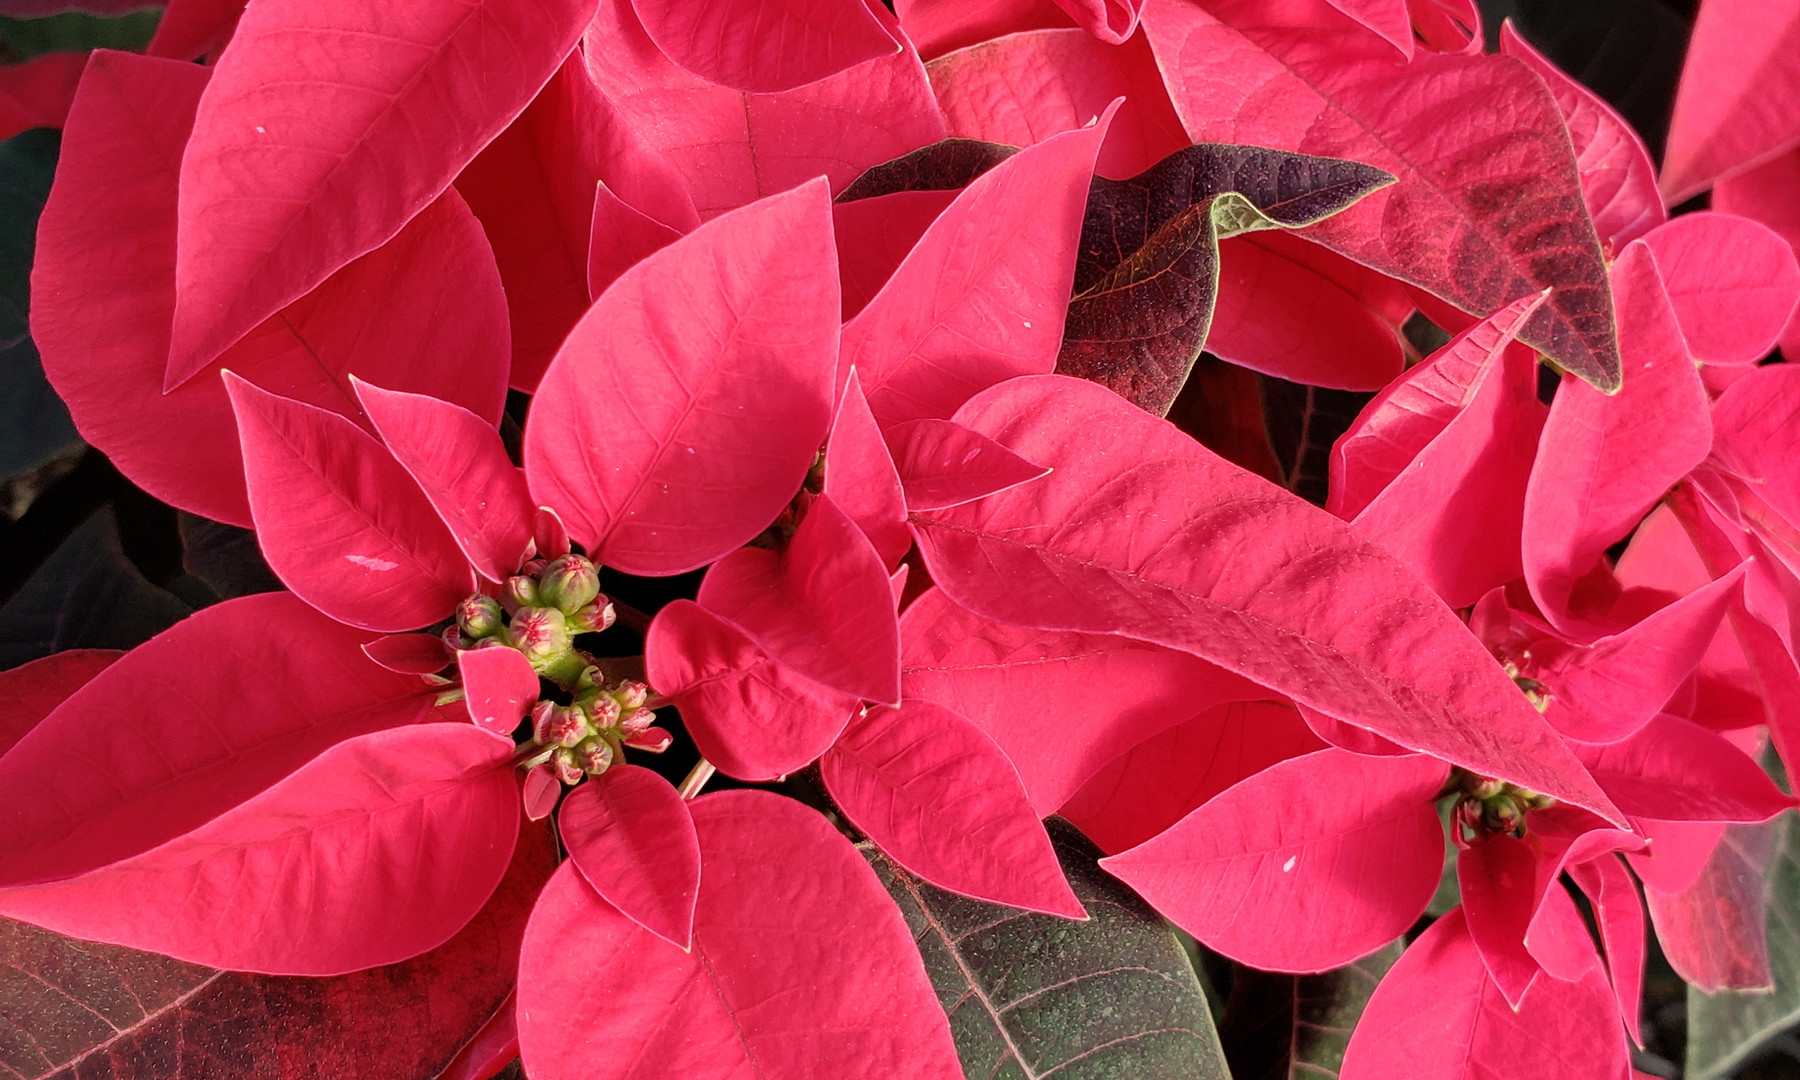 Princettia Red Poinsettia